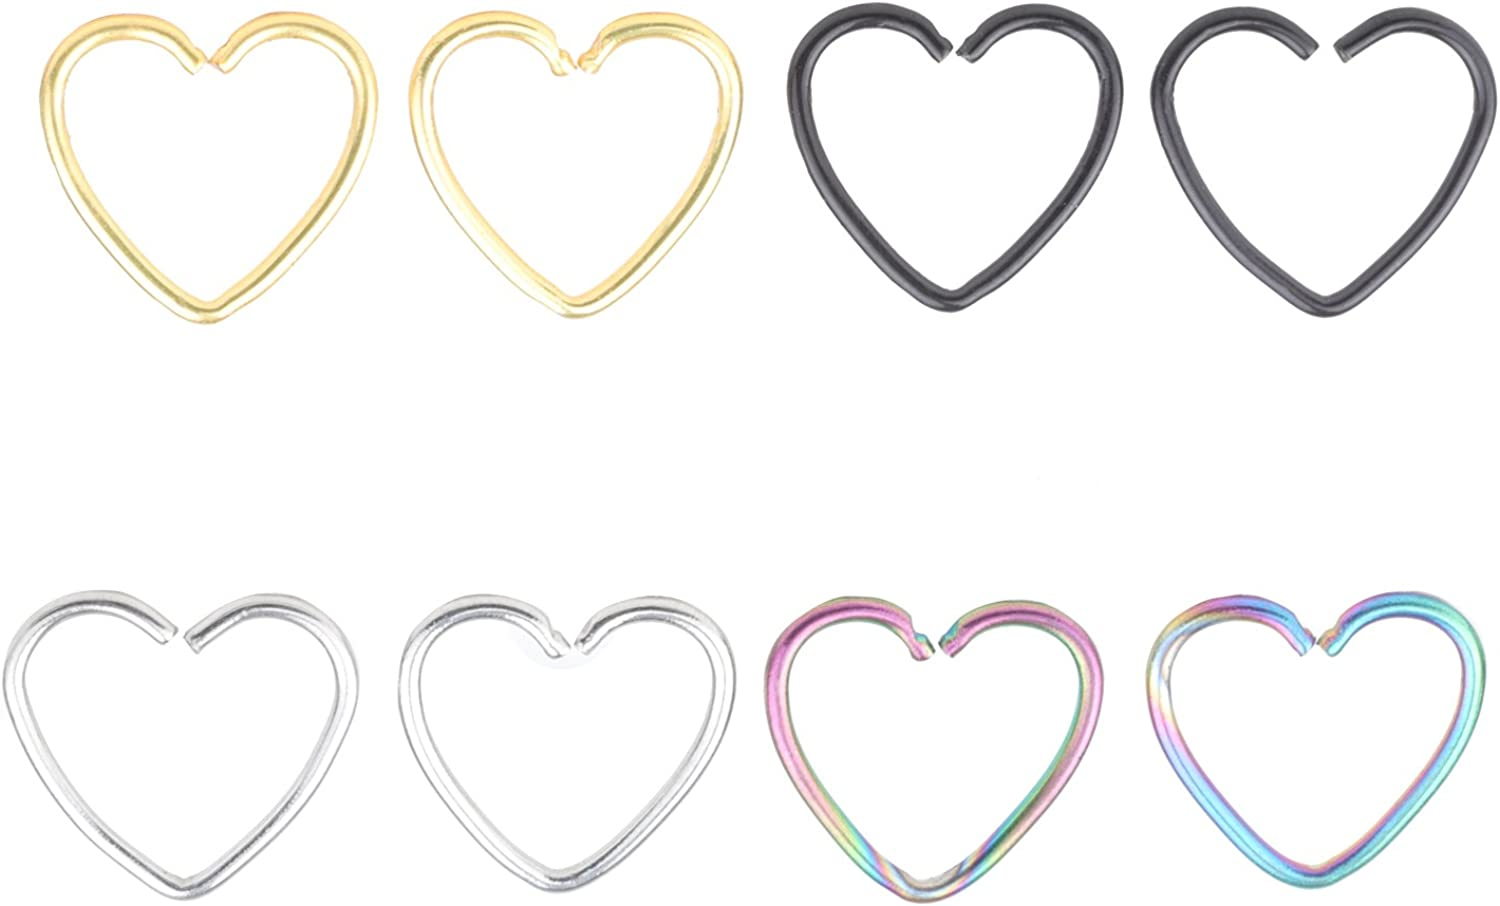 20G Heart Ear Nose Piercing Helix Cartilage Tragus Earring Stud Hoop Ring 10mm Surgical Stainless